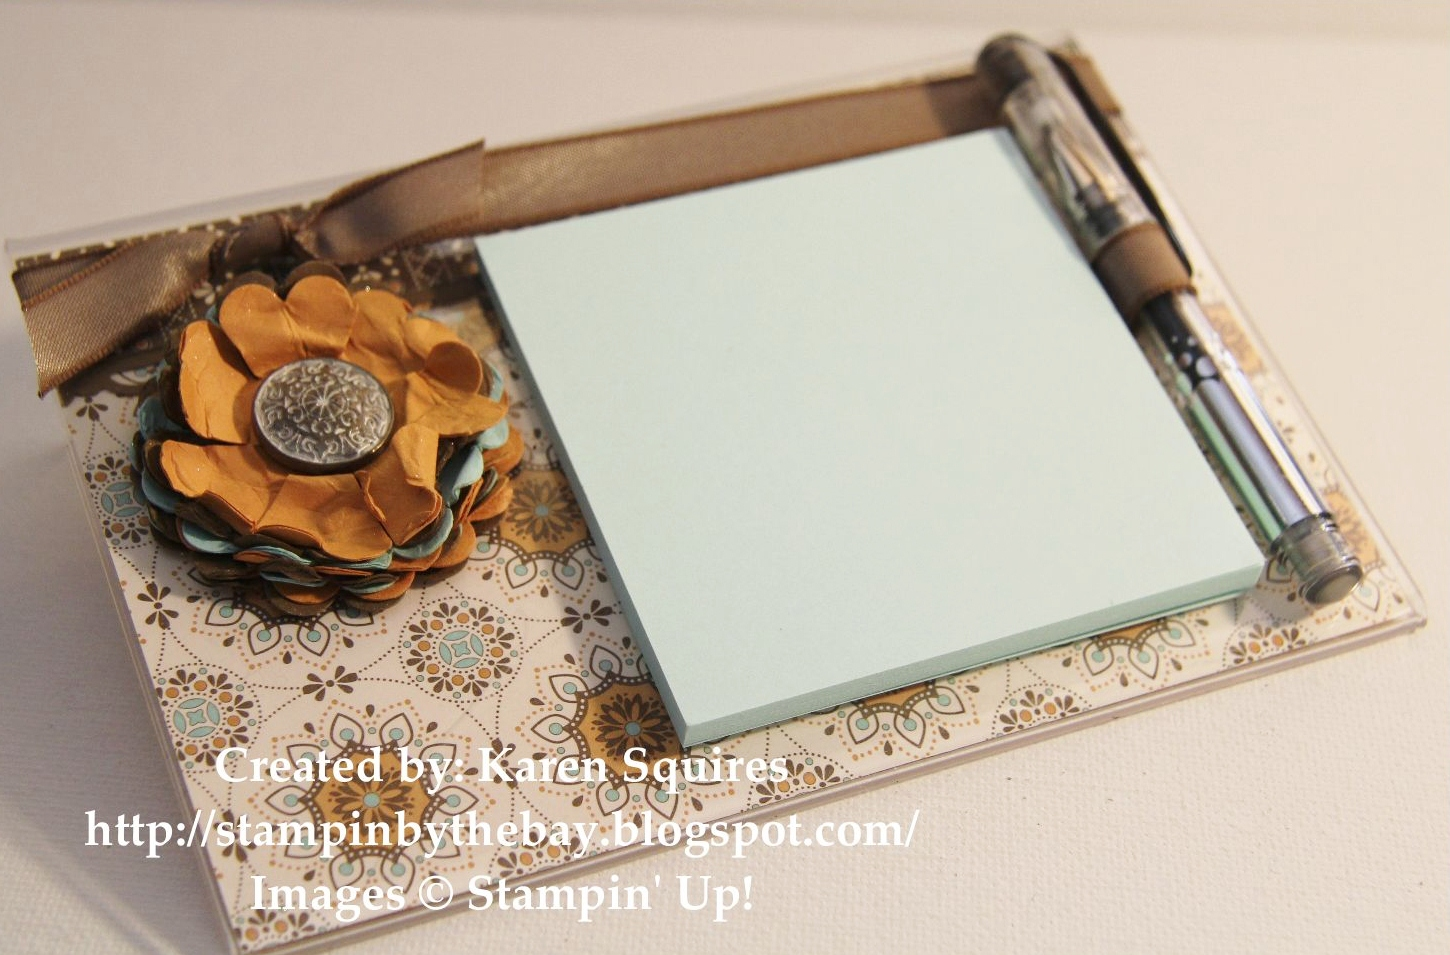 Stampin' By The Bay: Acrylic Post-It Note Holder